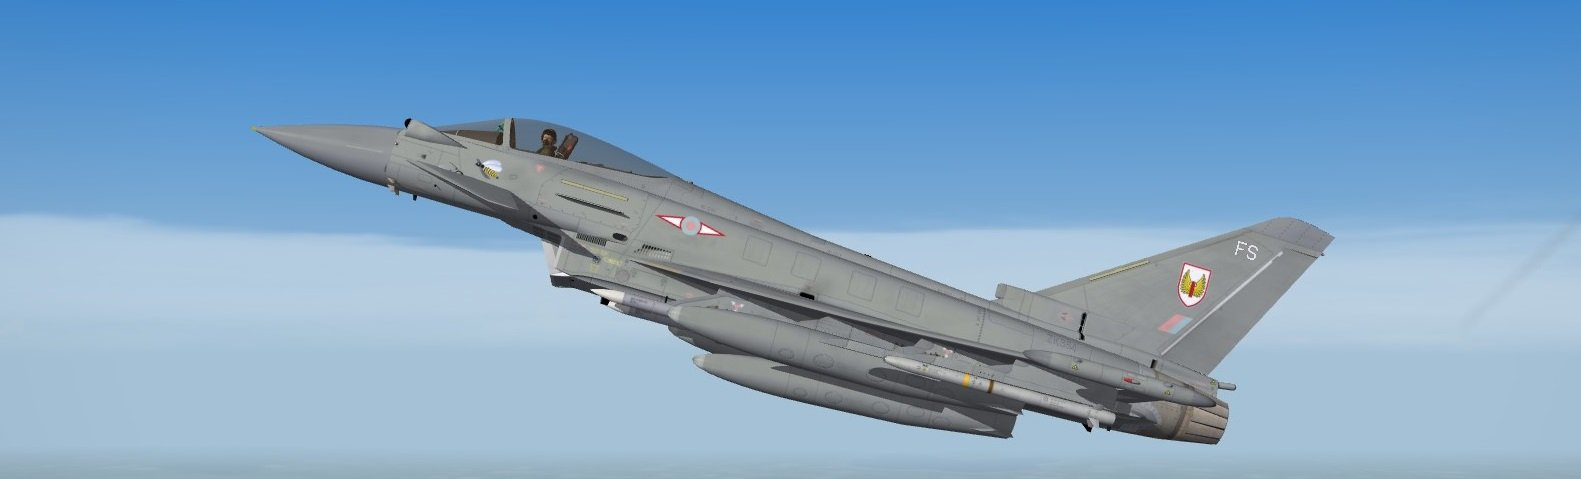 Typhoon, No.1 Squadron Royal Air Force